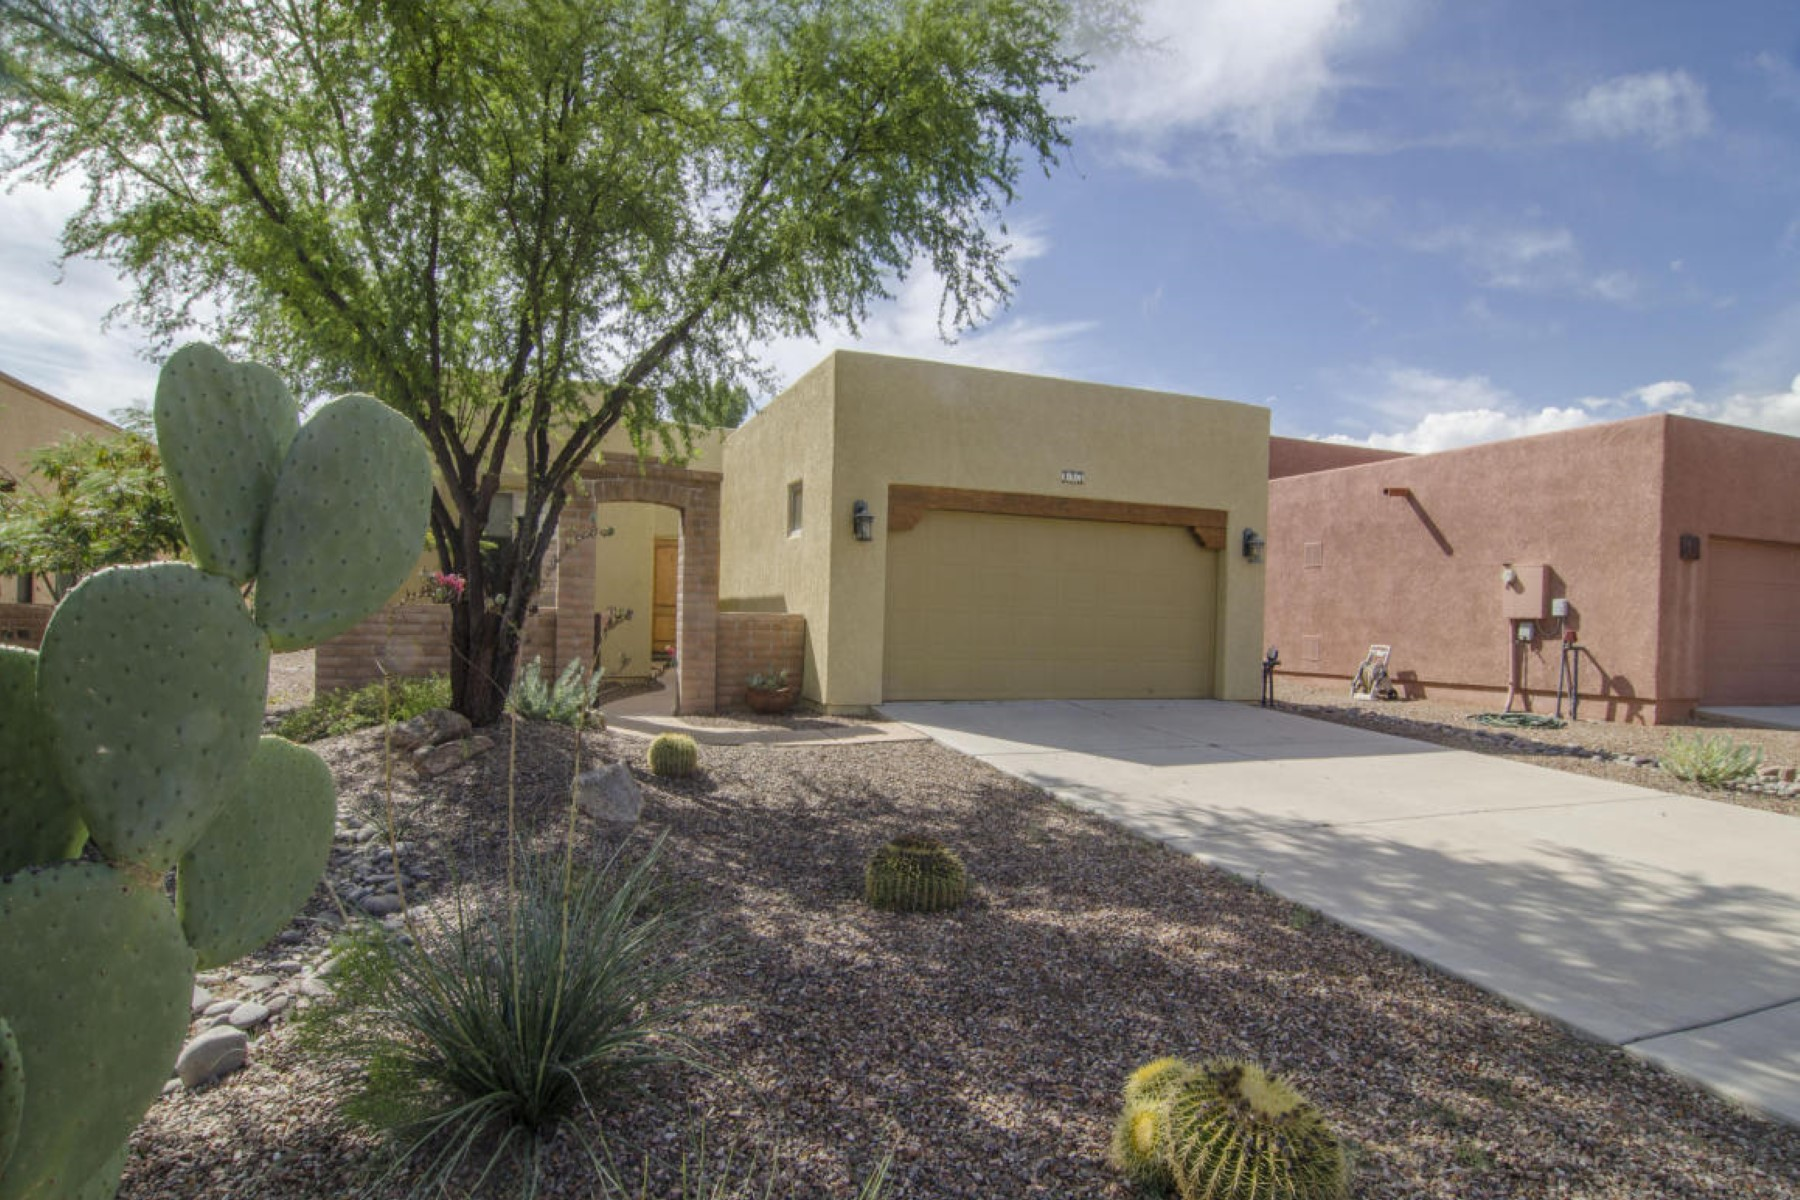 Single Family Home for Sale at Spacious Tubac Home 123 Avenida Urrutia Tubac, Arizona, 85646 United States